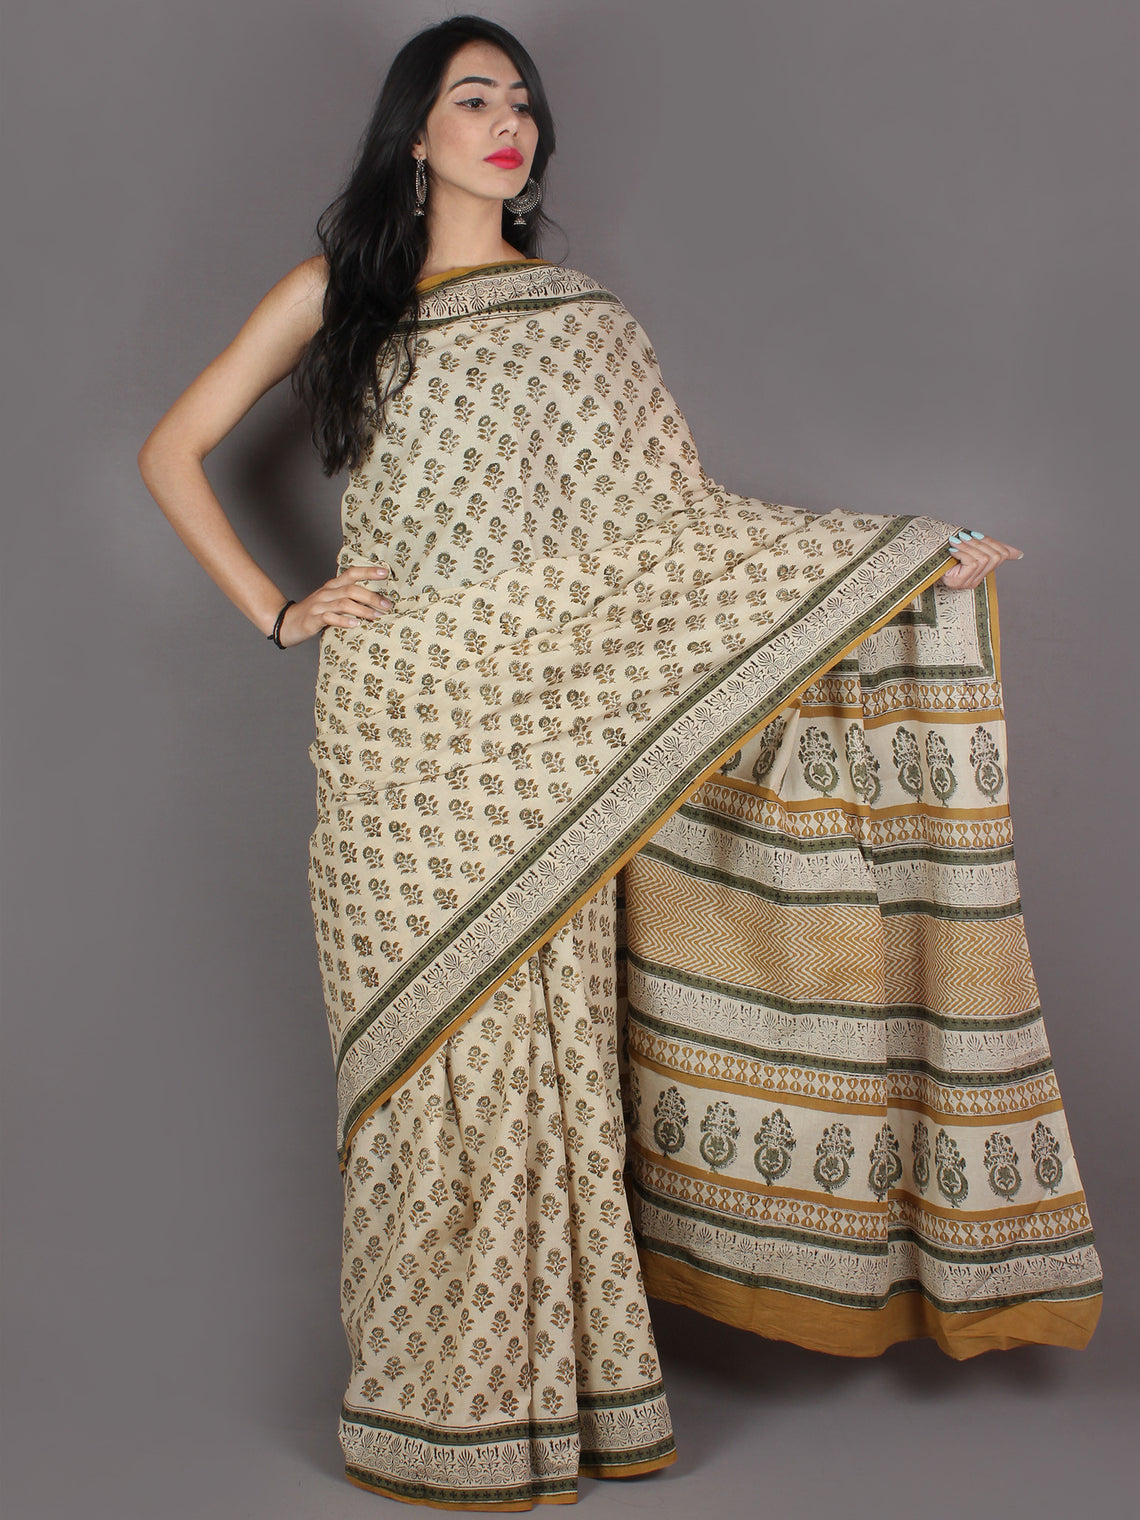 Ivory Green Yellow Black Hand Block Printed in Natural Colors Cotton Mul Saree - S03170962